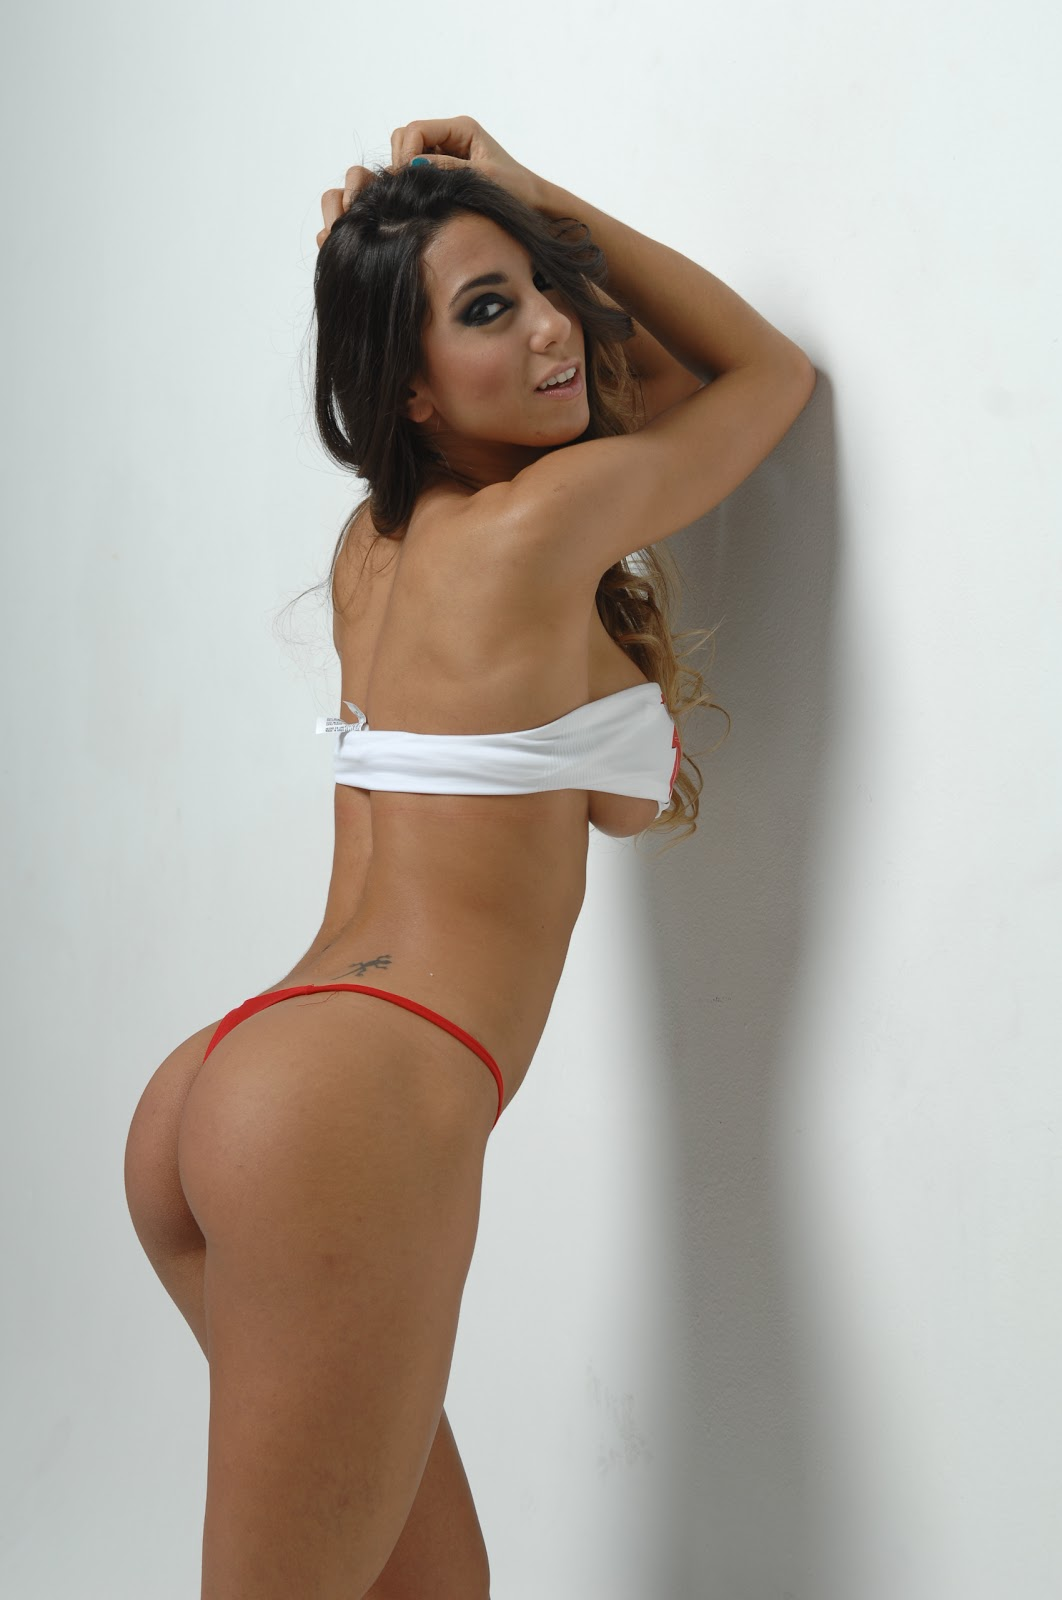 Cinthia fernandez nude excellent and